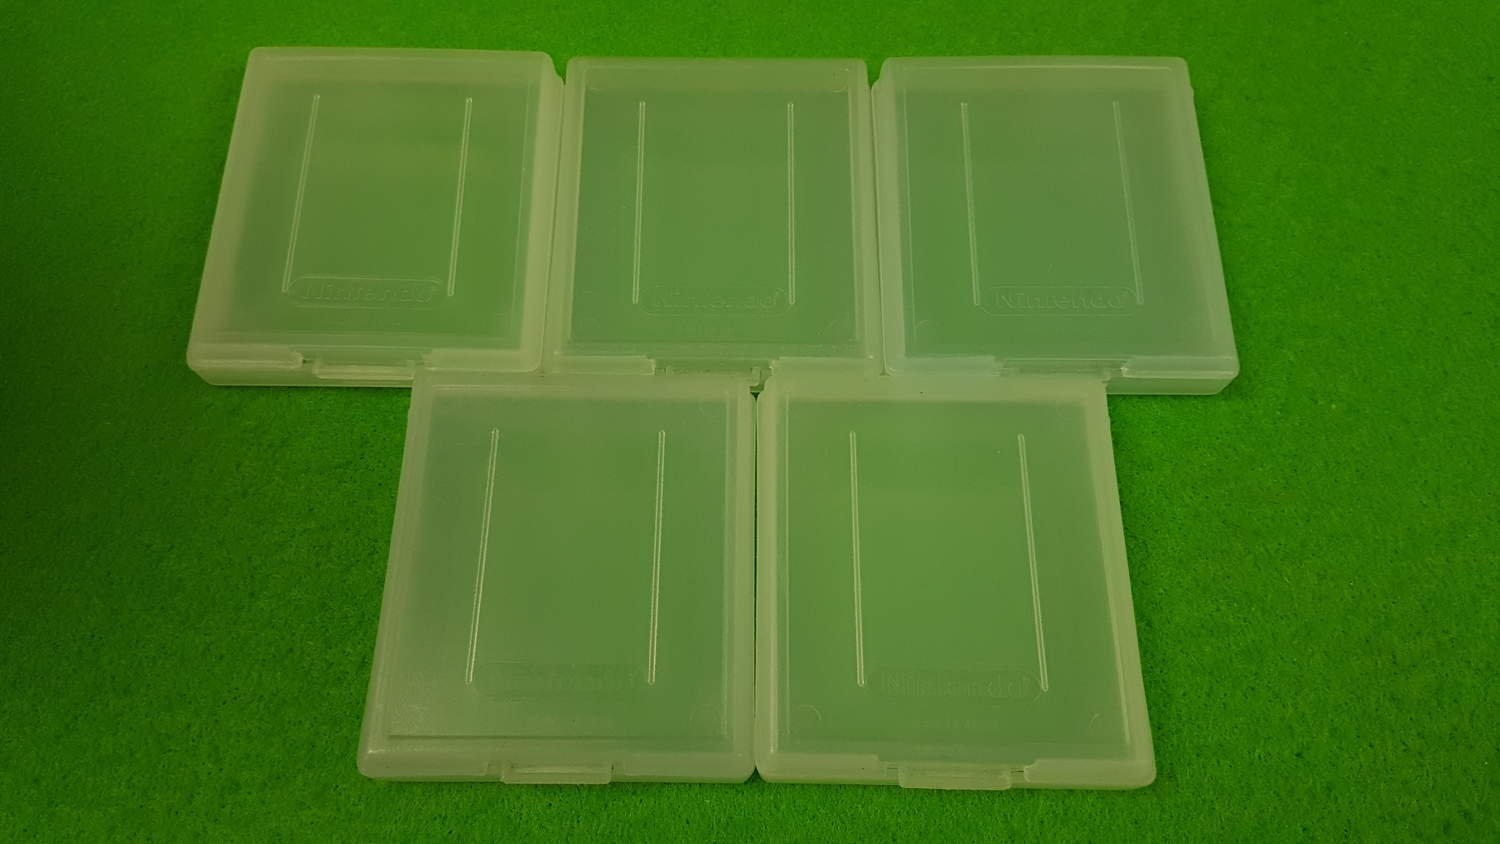 5st Gameboy Plastfodral gameboy gb  fodral